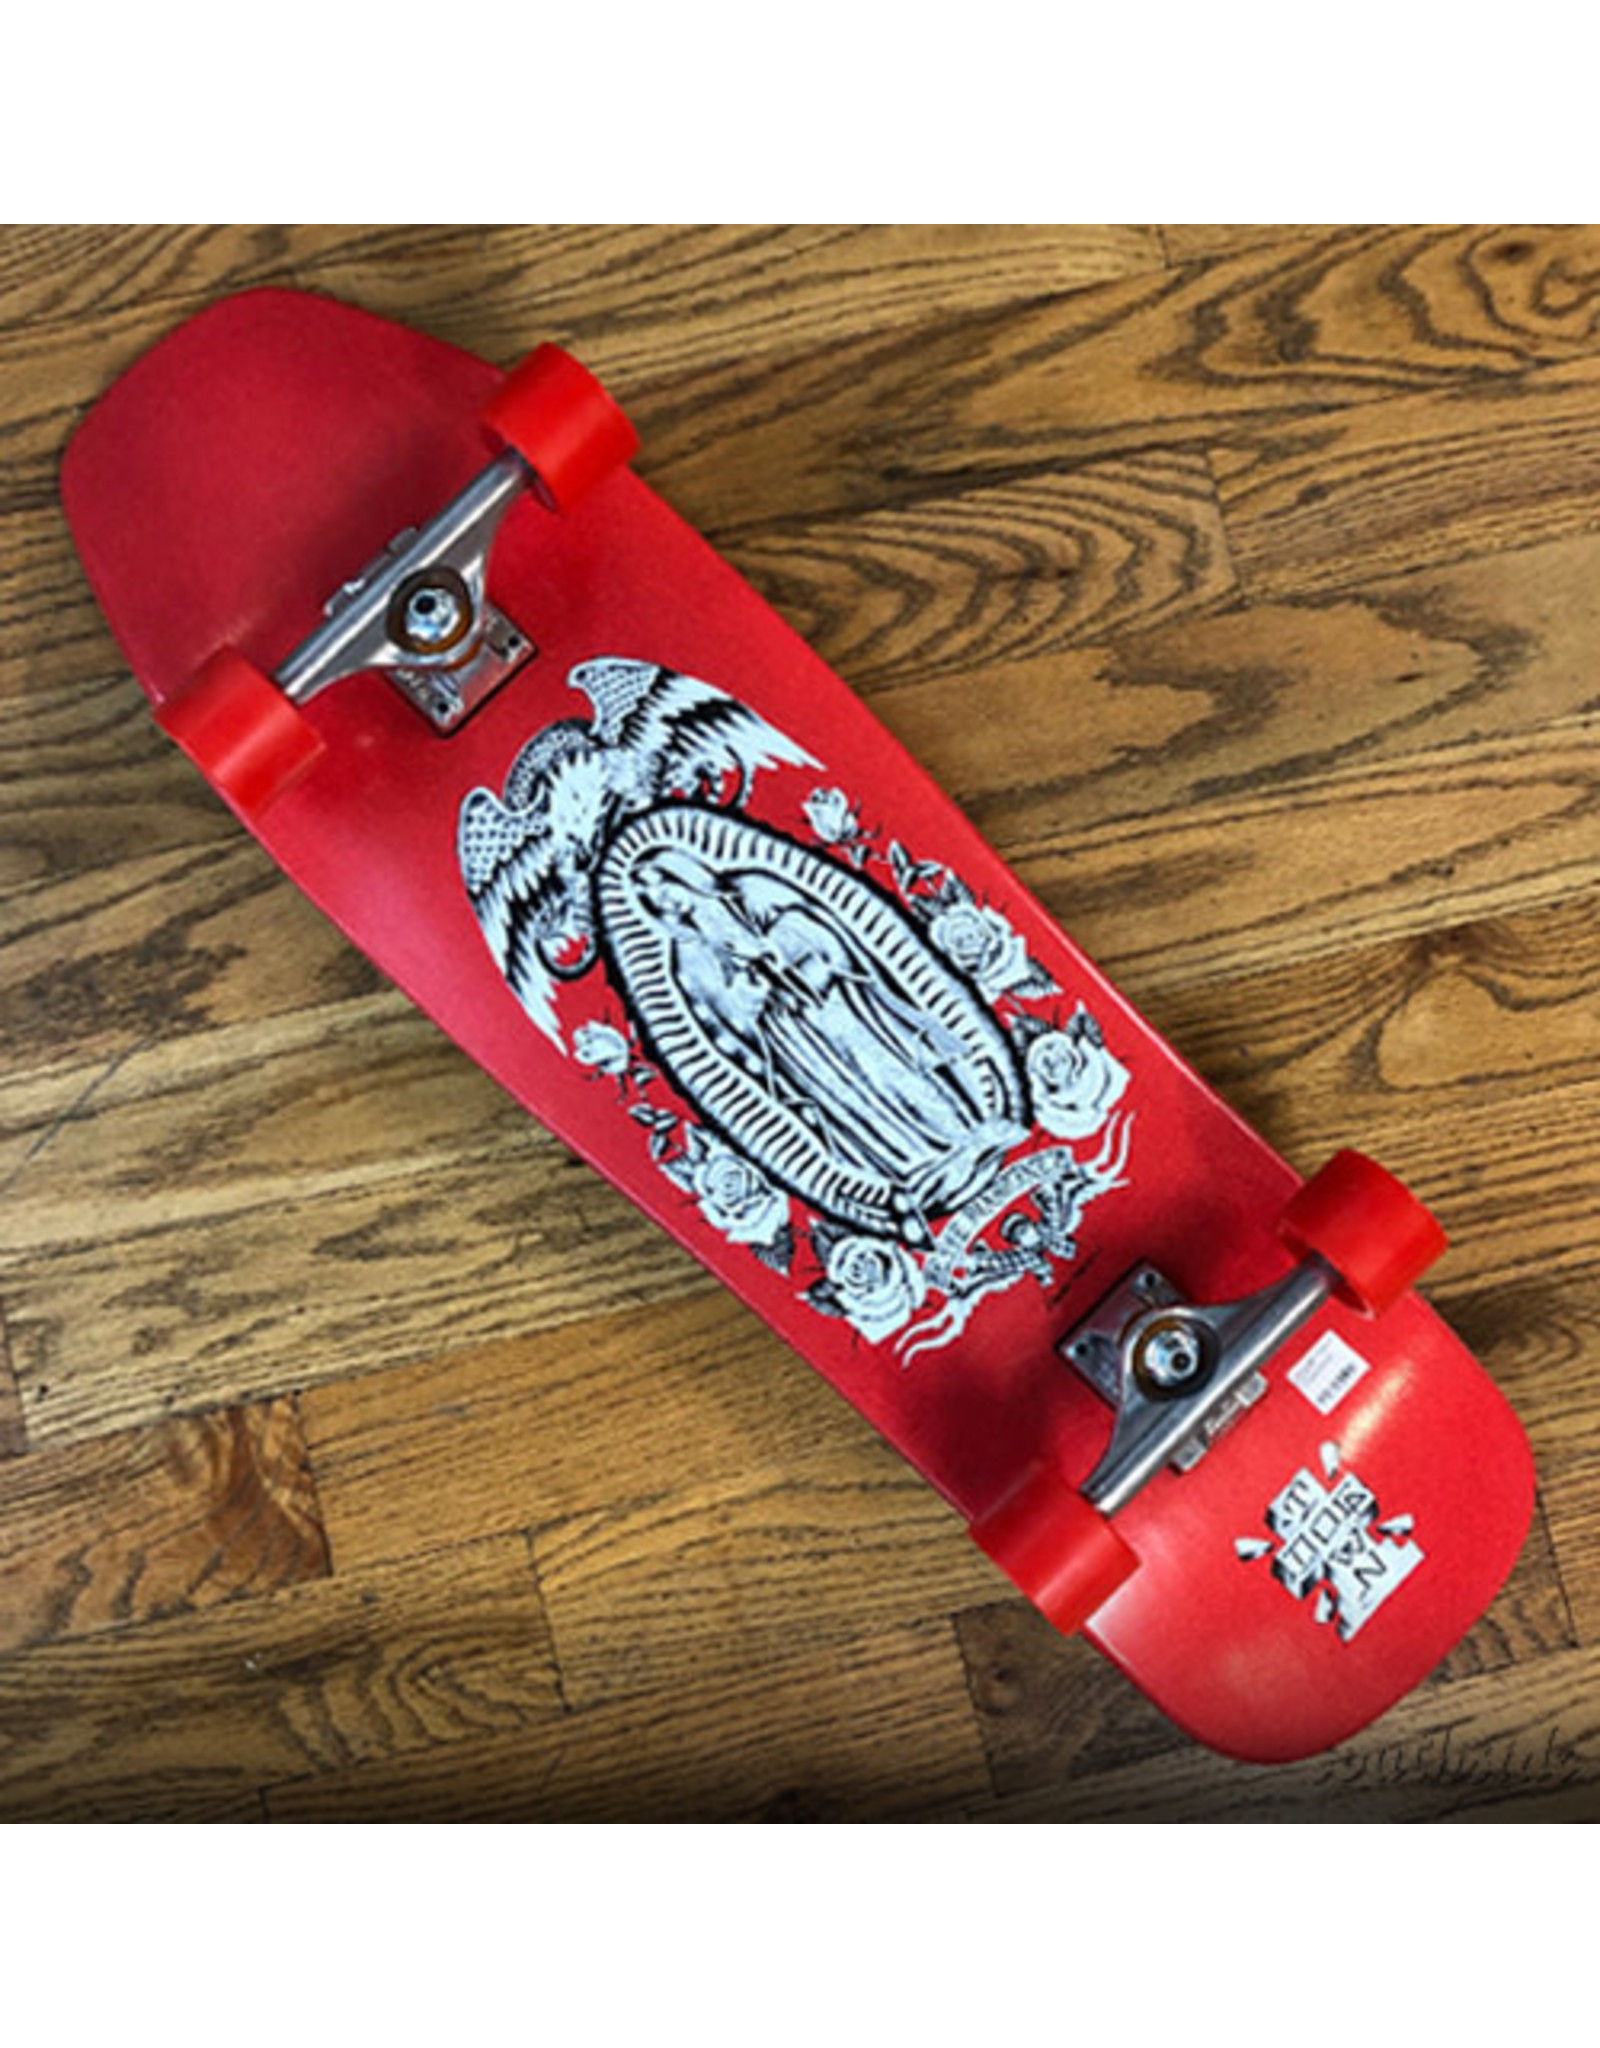 Dogtown Jesse Martinez Red Candy Dipped Complete Shaped